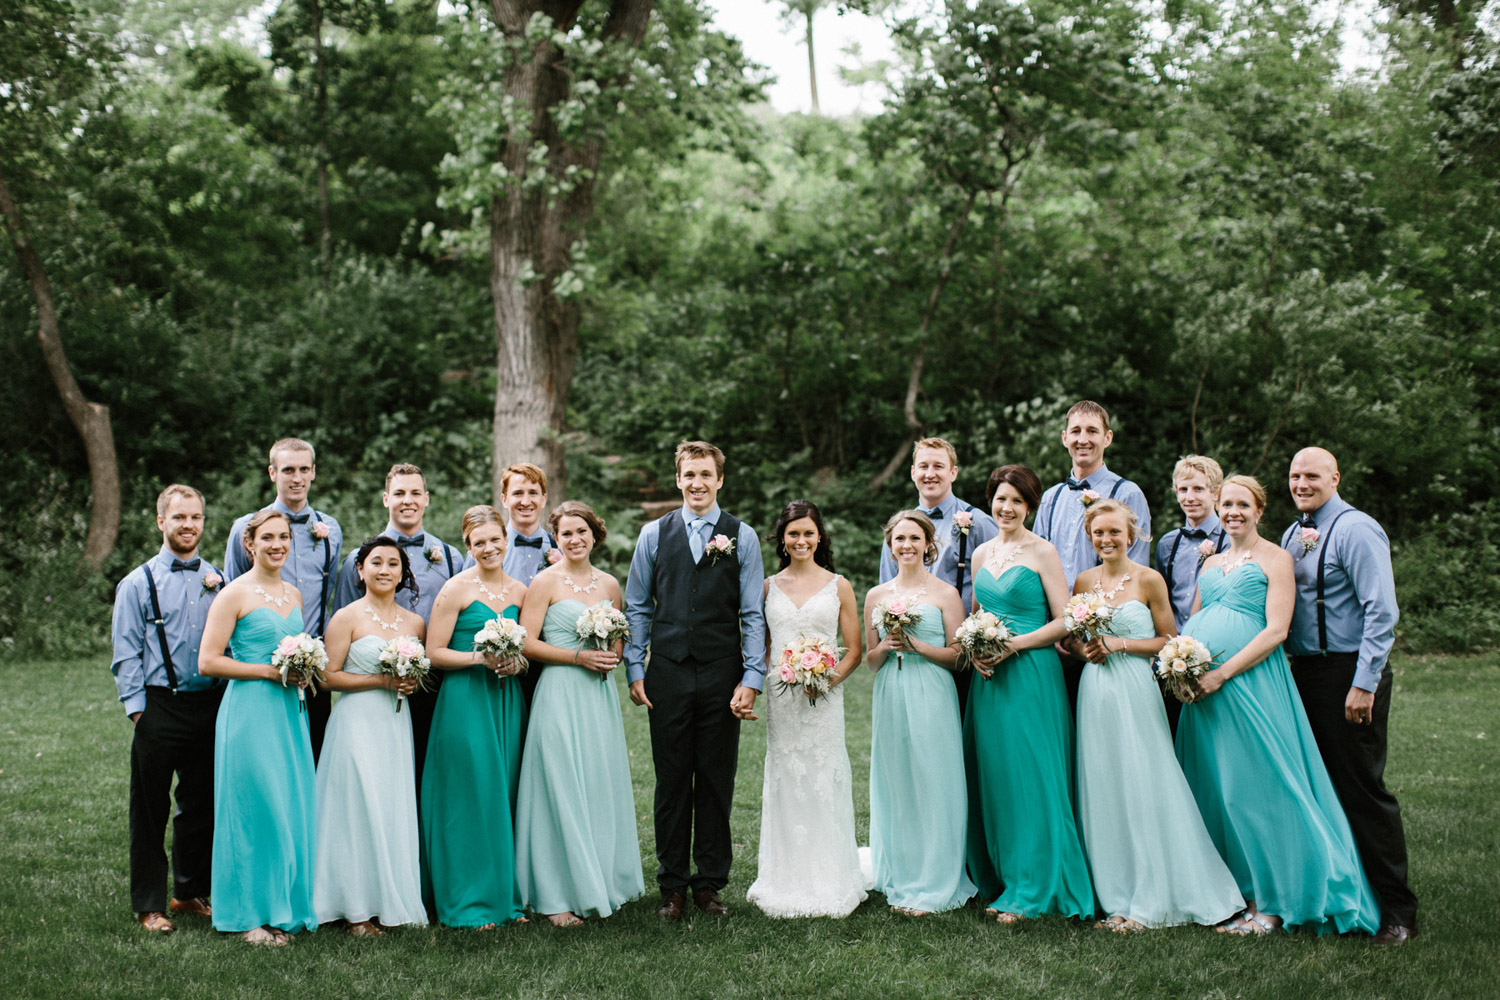 Outdoor_Wedding_SiouxFalls_MaryJoWegnerArboretum_Photographer_Calli&Jon_056.jpg